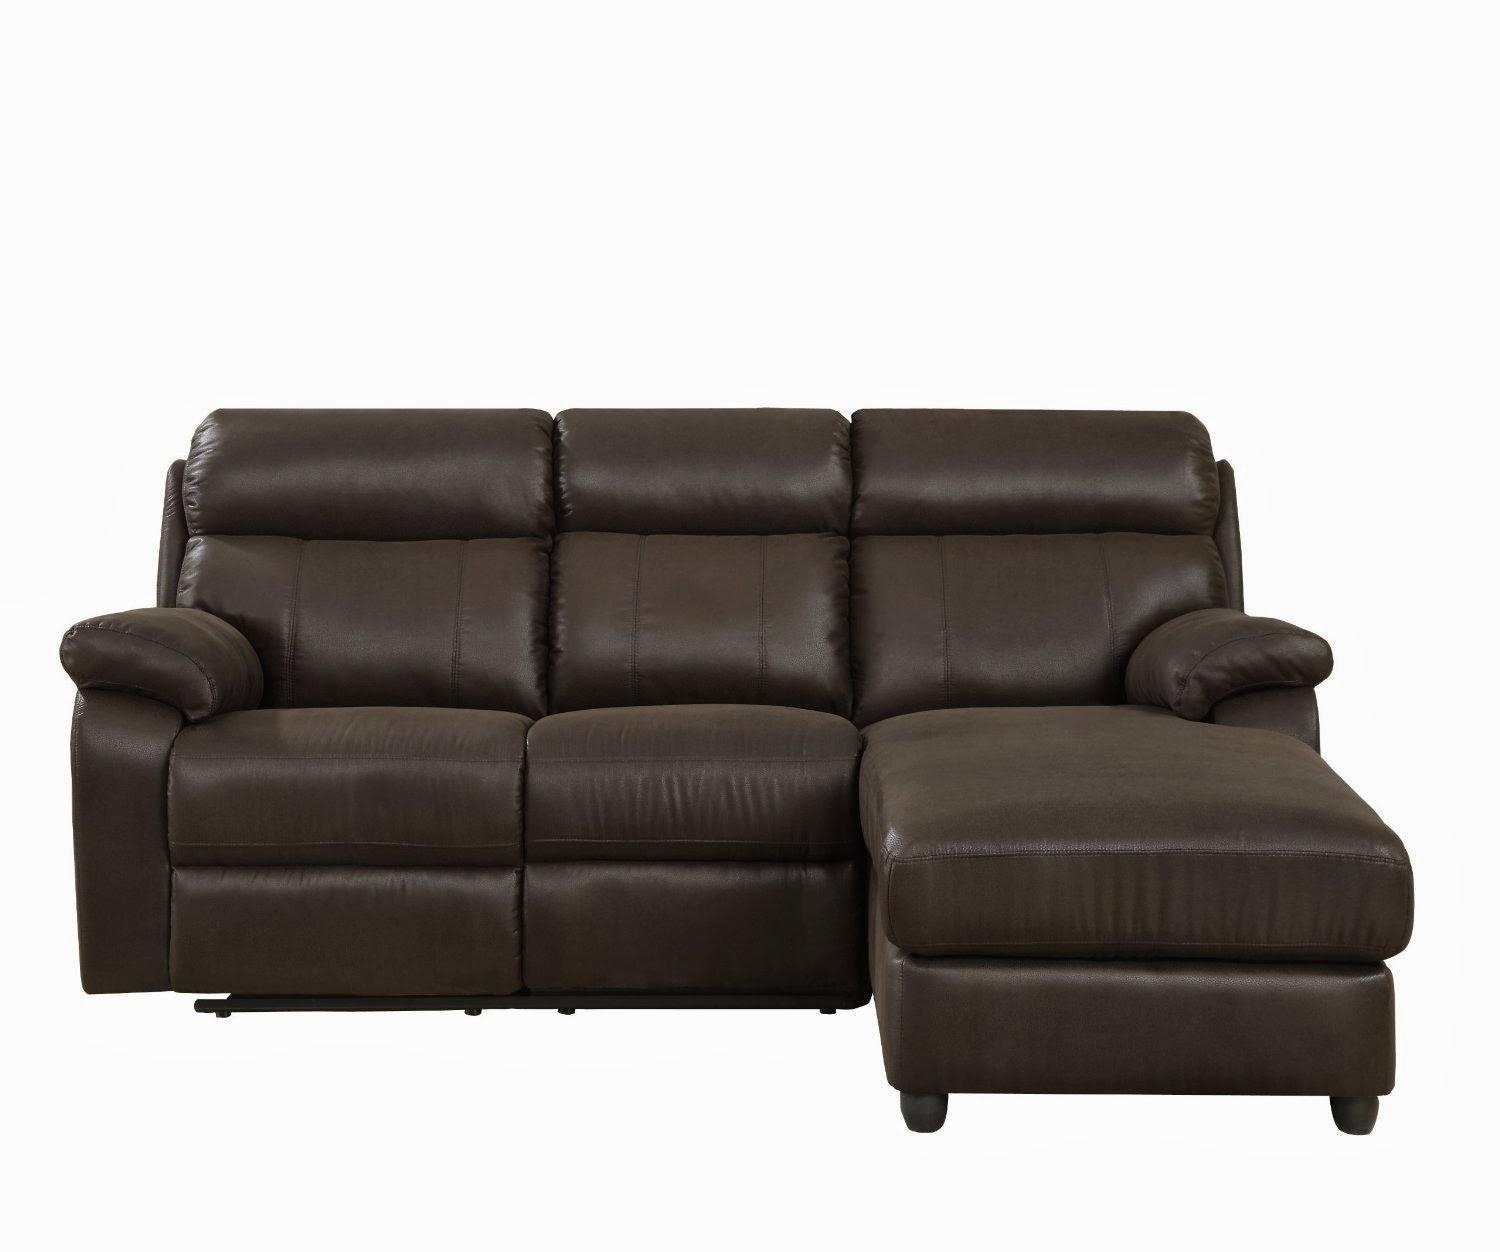 High Back Sofa Bed | Tehranmix Decoration With Regard To Very Small Sofas (Image 3 of 20)